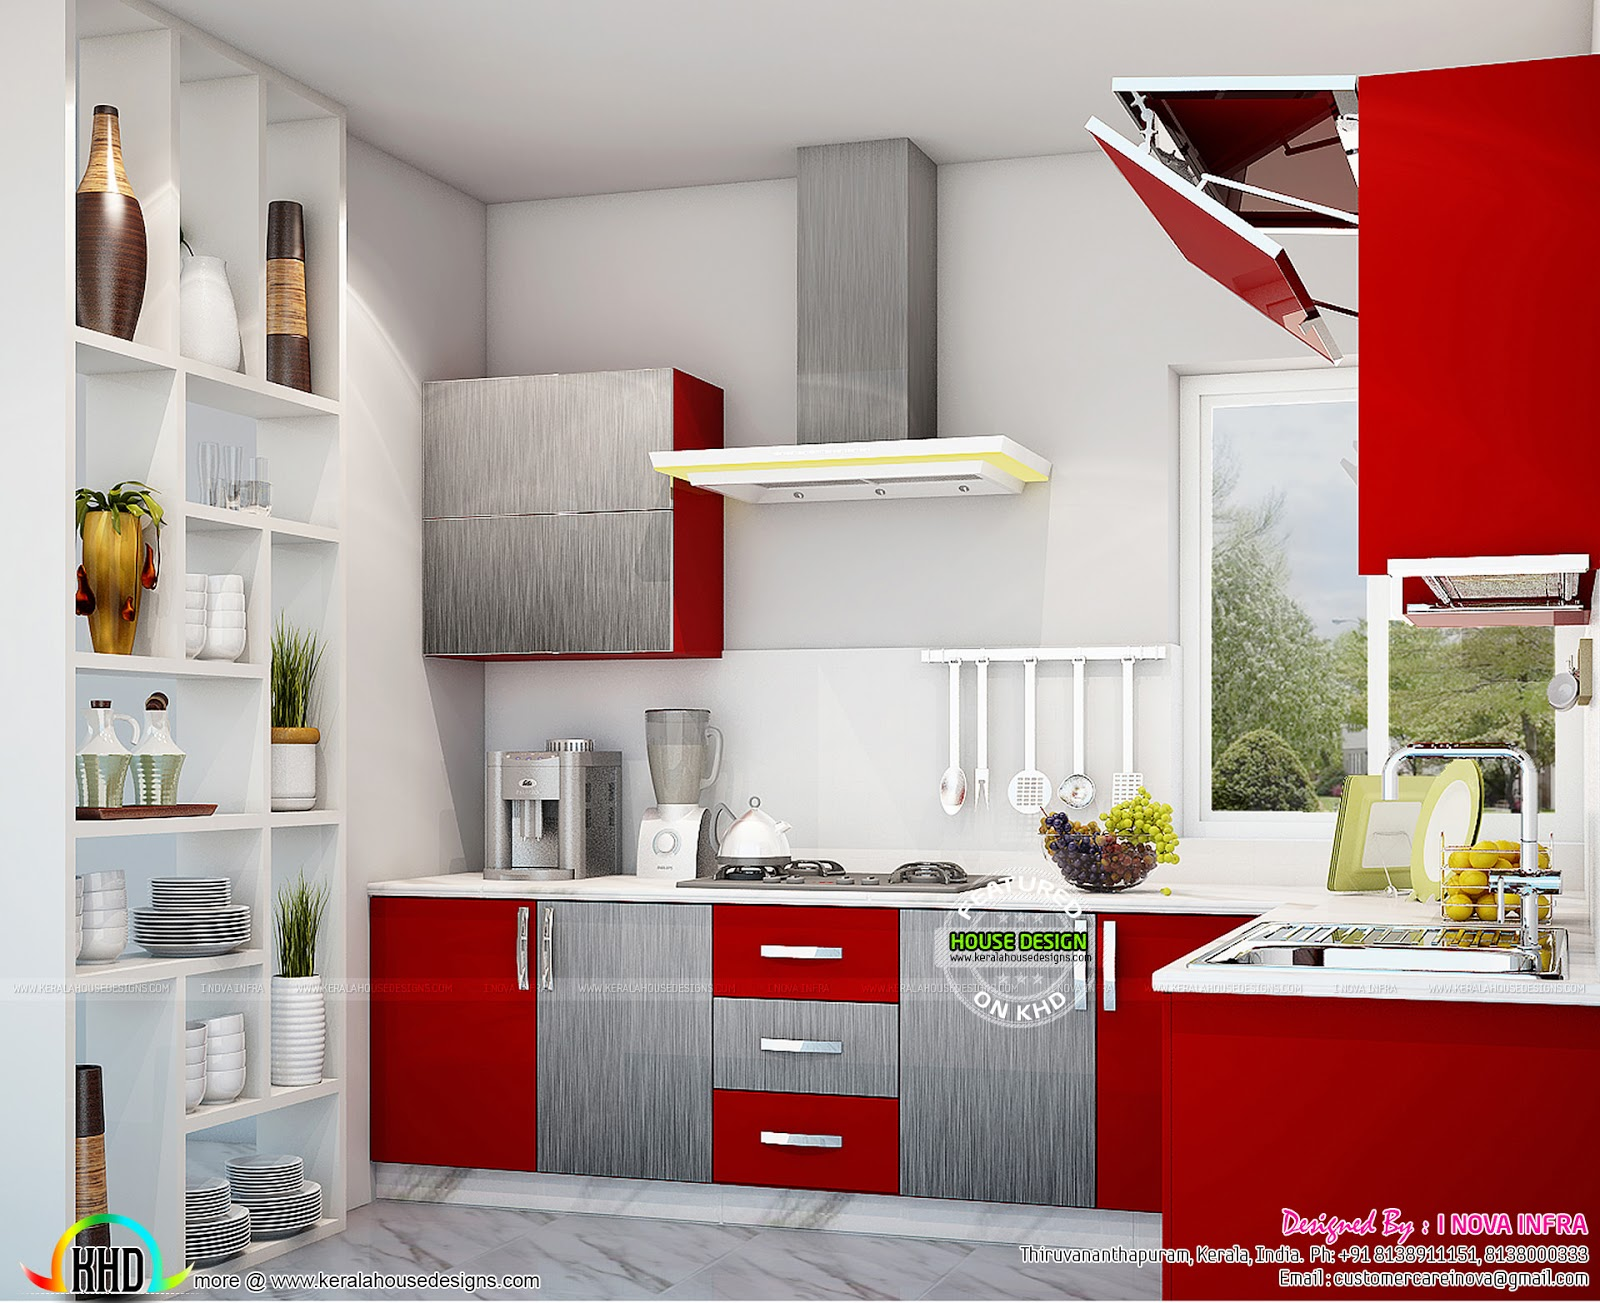 Kitchen interior works at trivandrum kerala home design Kitchen interior design